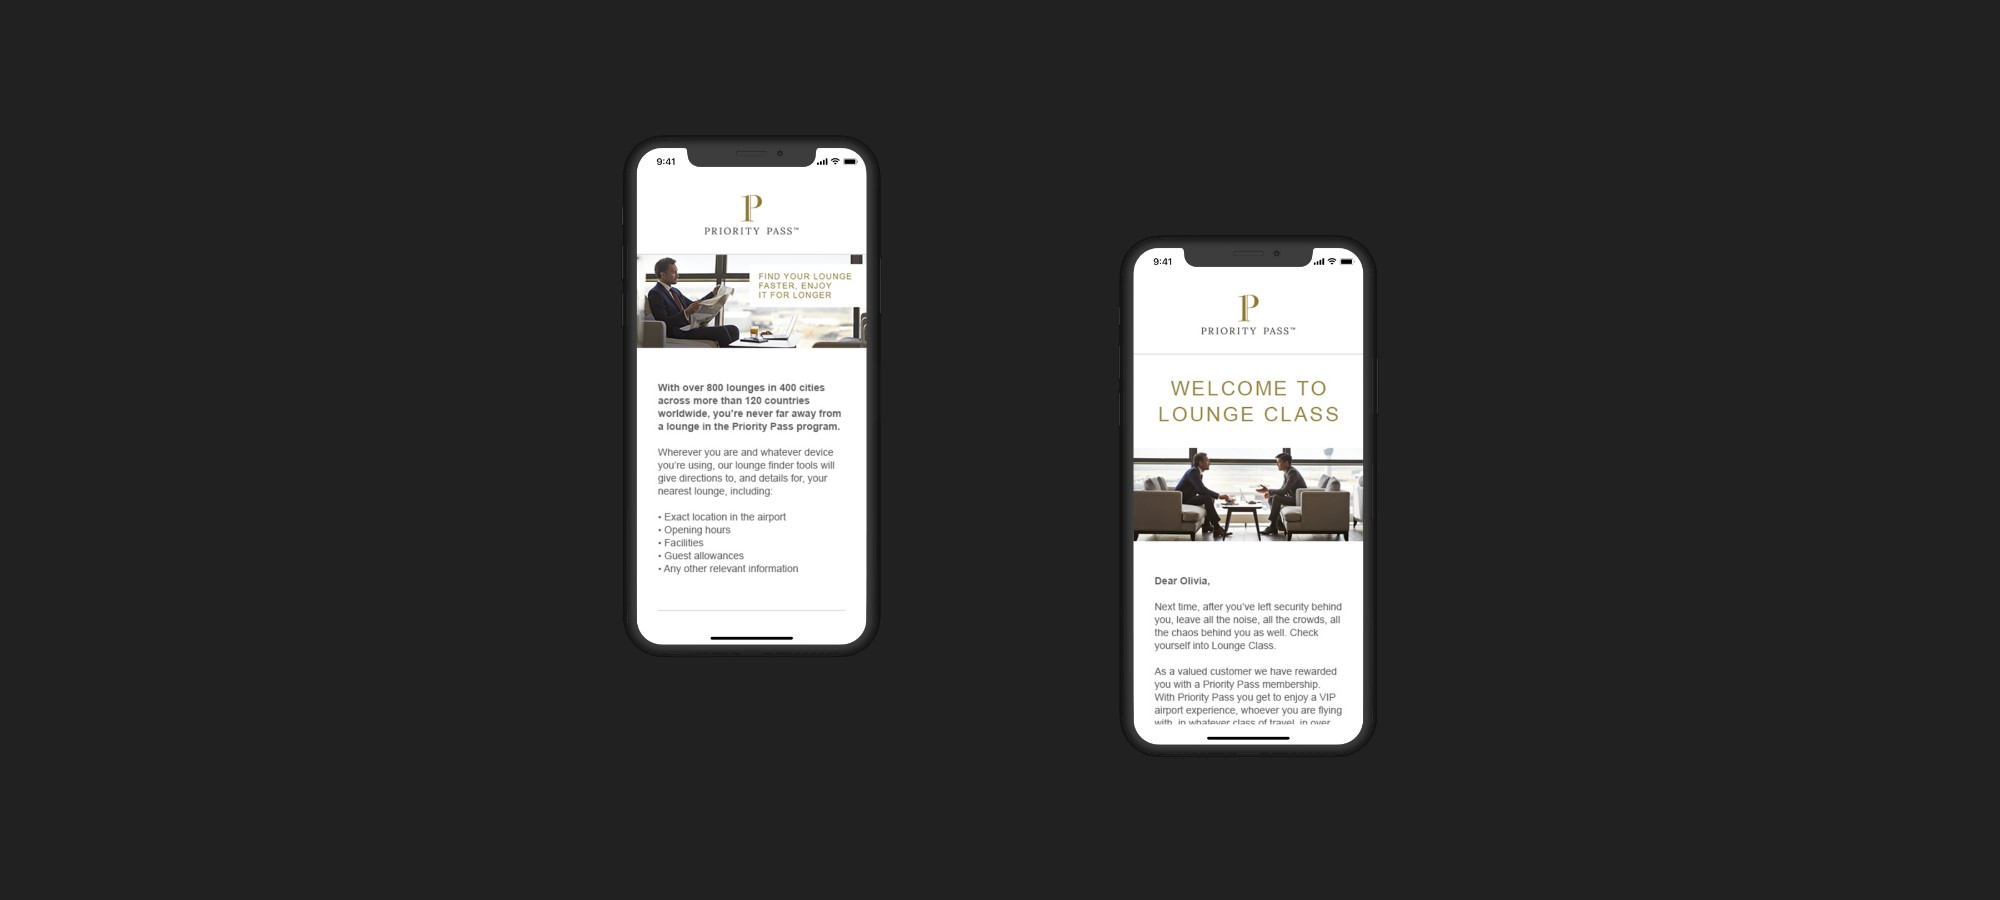 Mobile showing Priority Pass website and mobile showing welcome email to customer